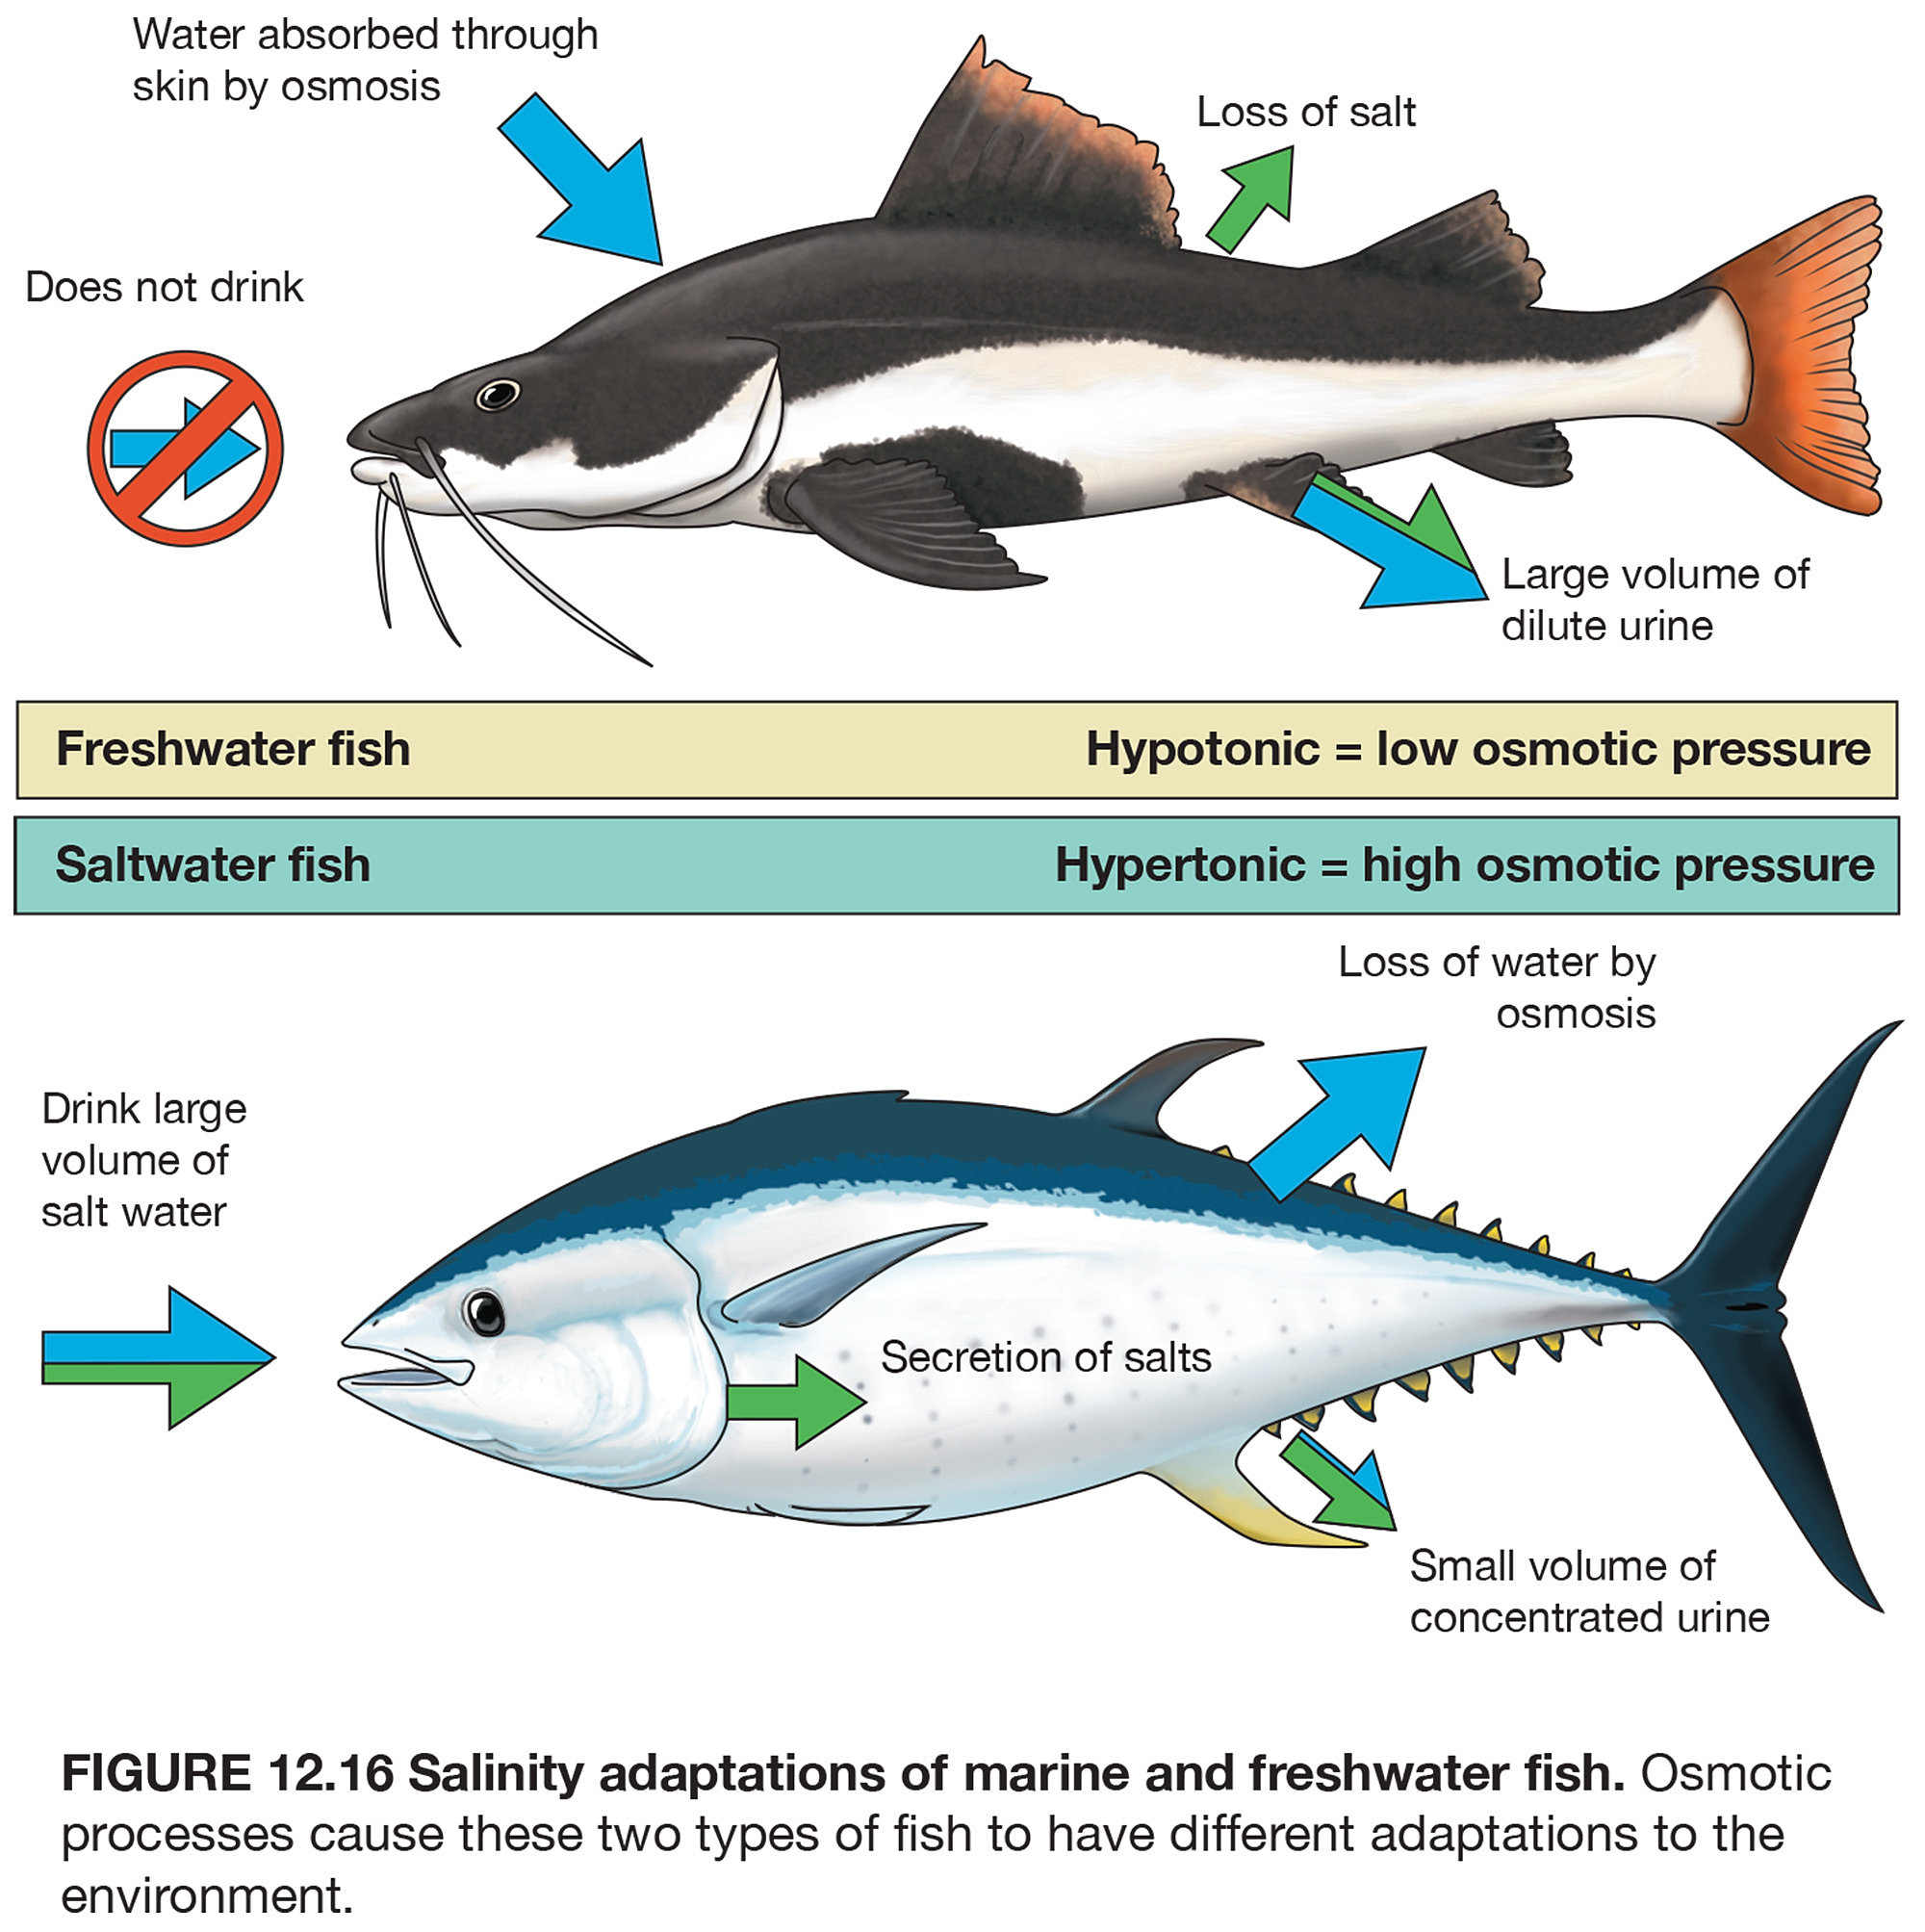 Freshwater fish hypertonic - Osmotic Pressures In Fish Found In Essentials Of Oceanography 11th Ed By Trujillo And Thurman Adobe Photoshop And Illustrator